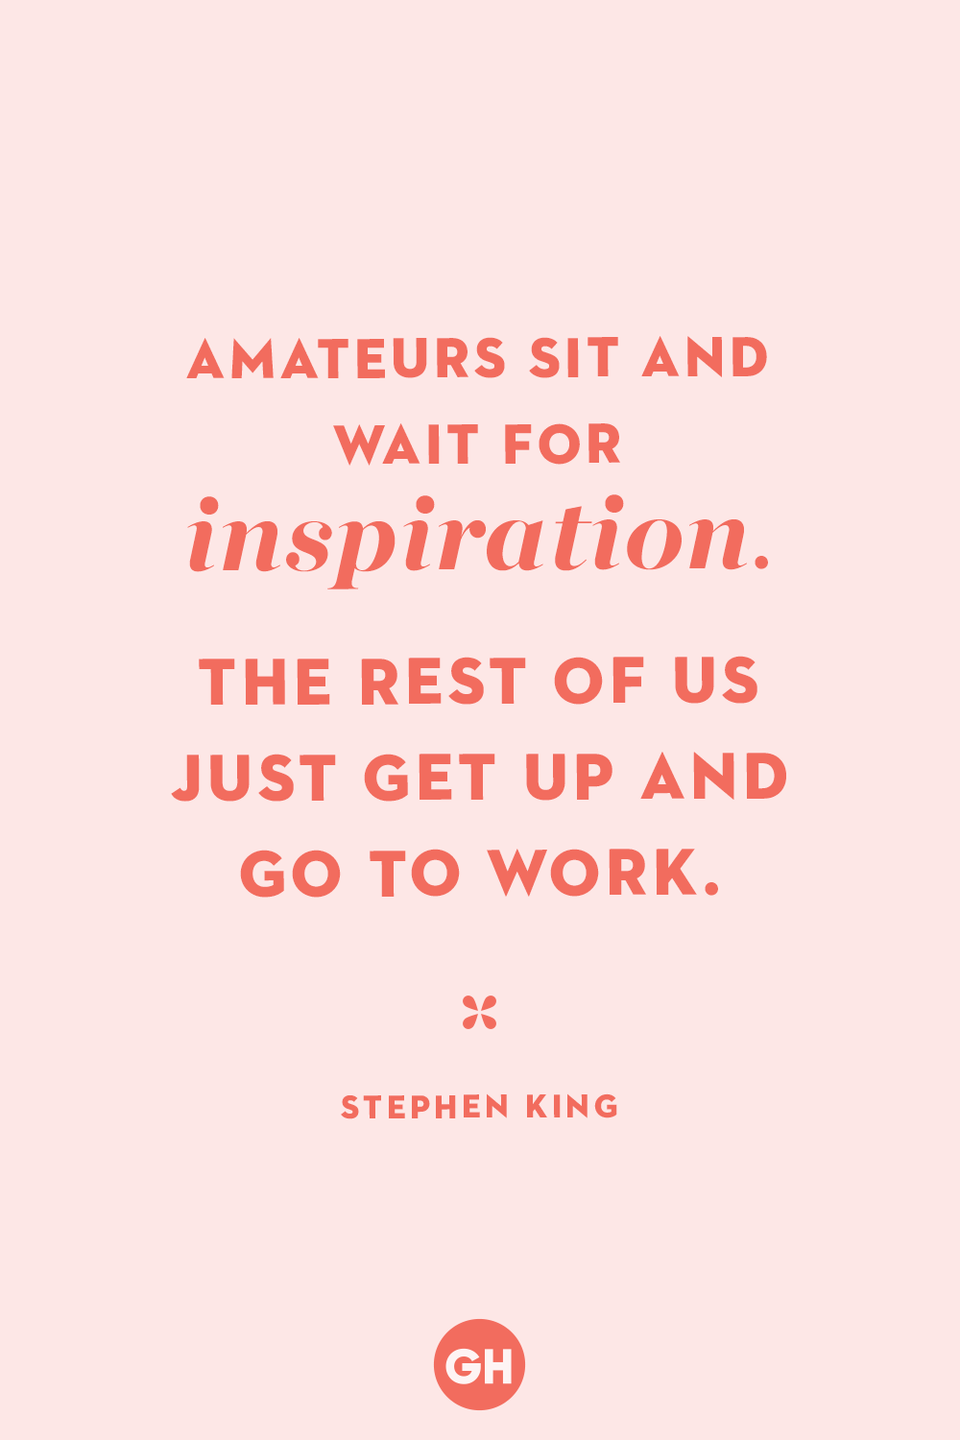 <p>Amateurs sit and wait for inspiration. The rest of us just get up and go to work. </p>